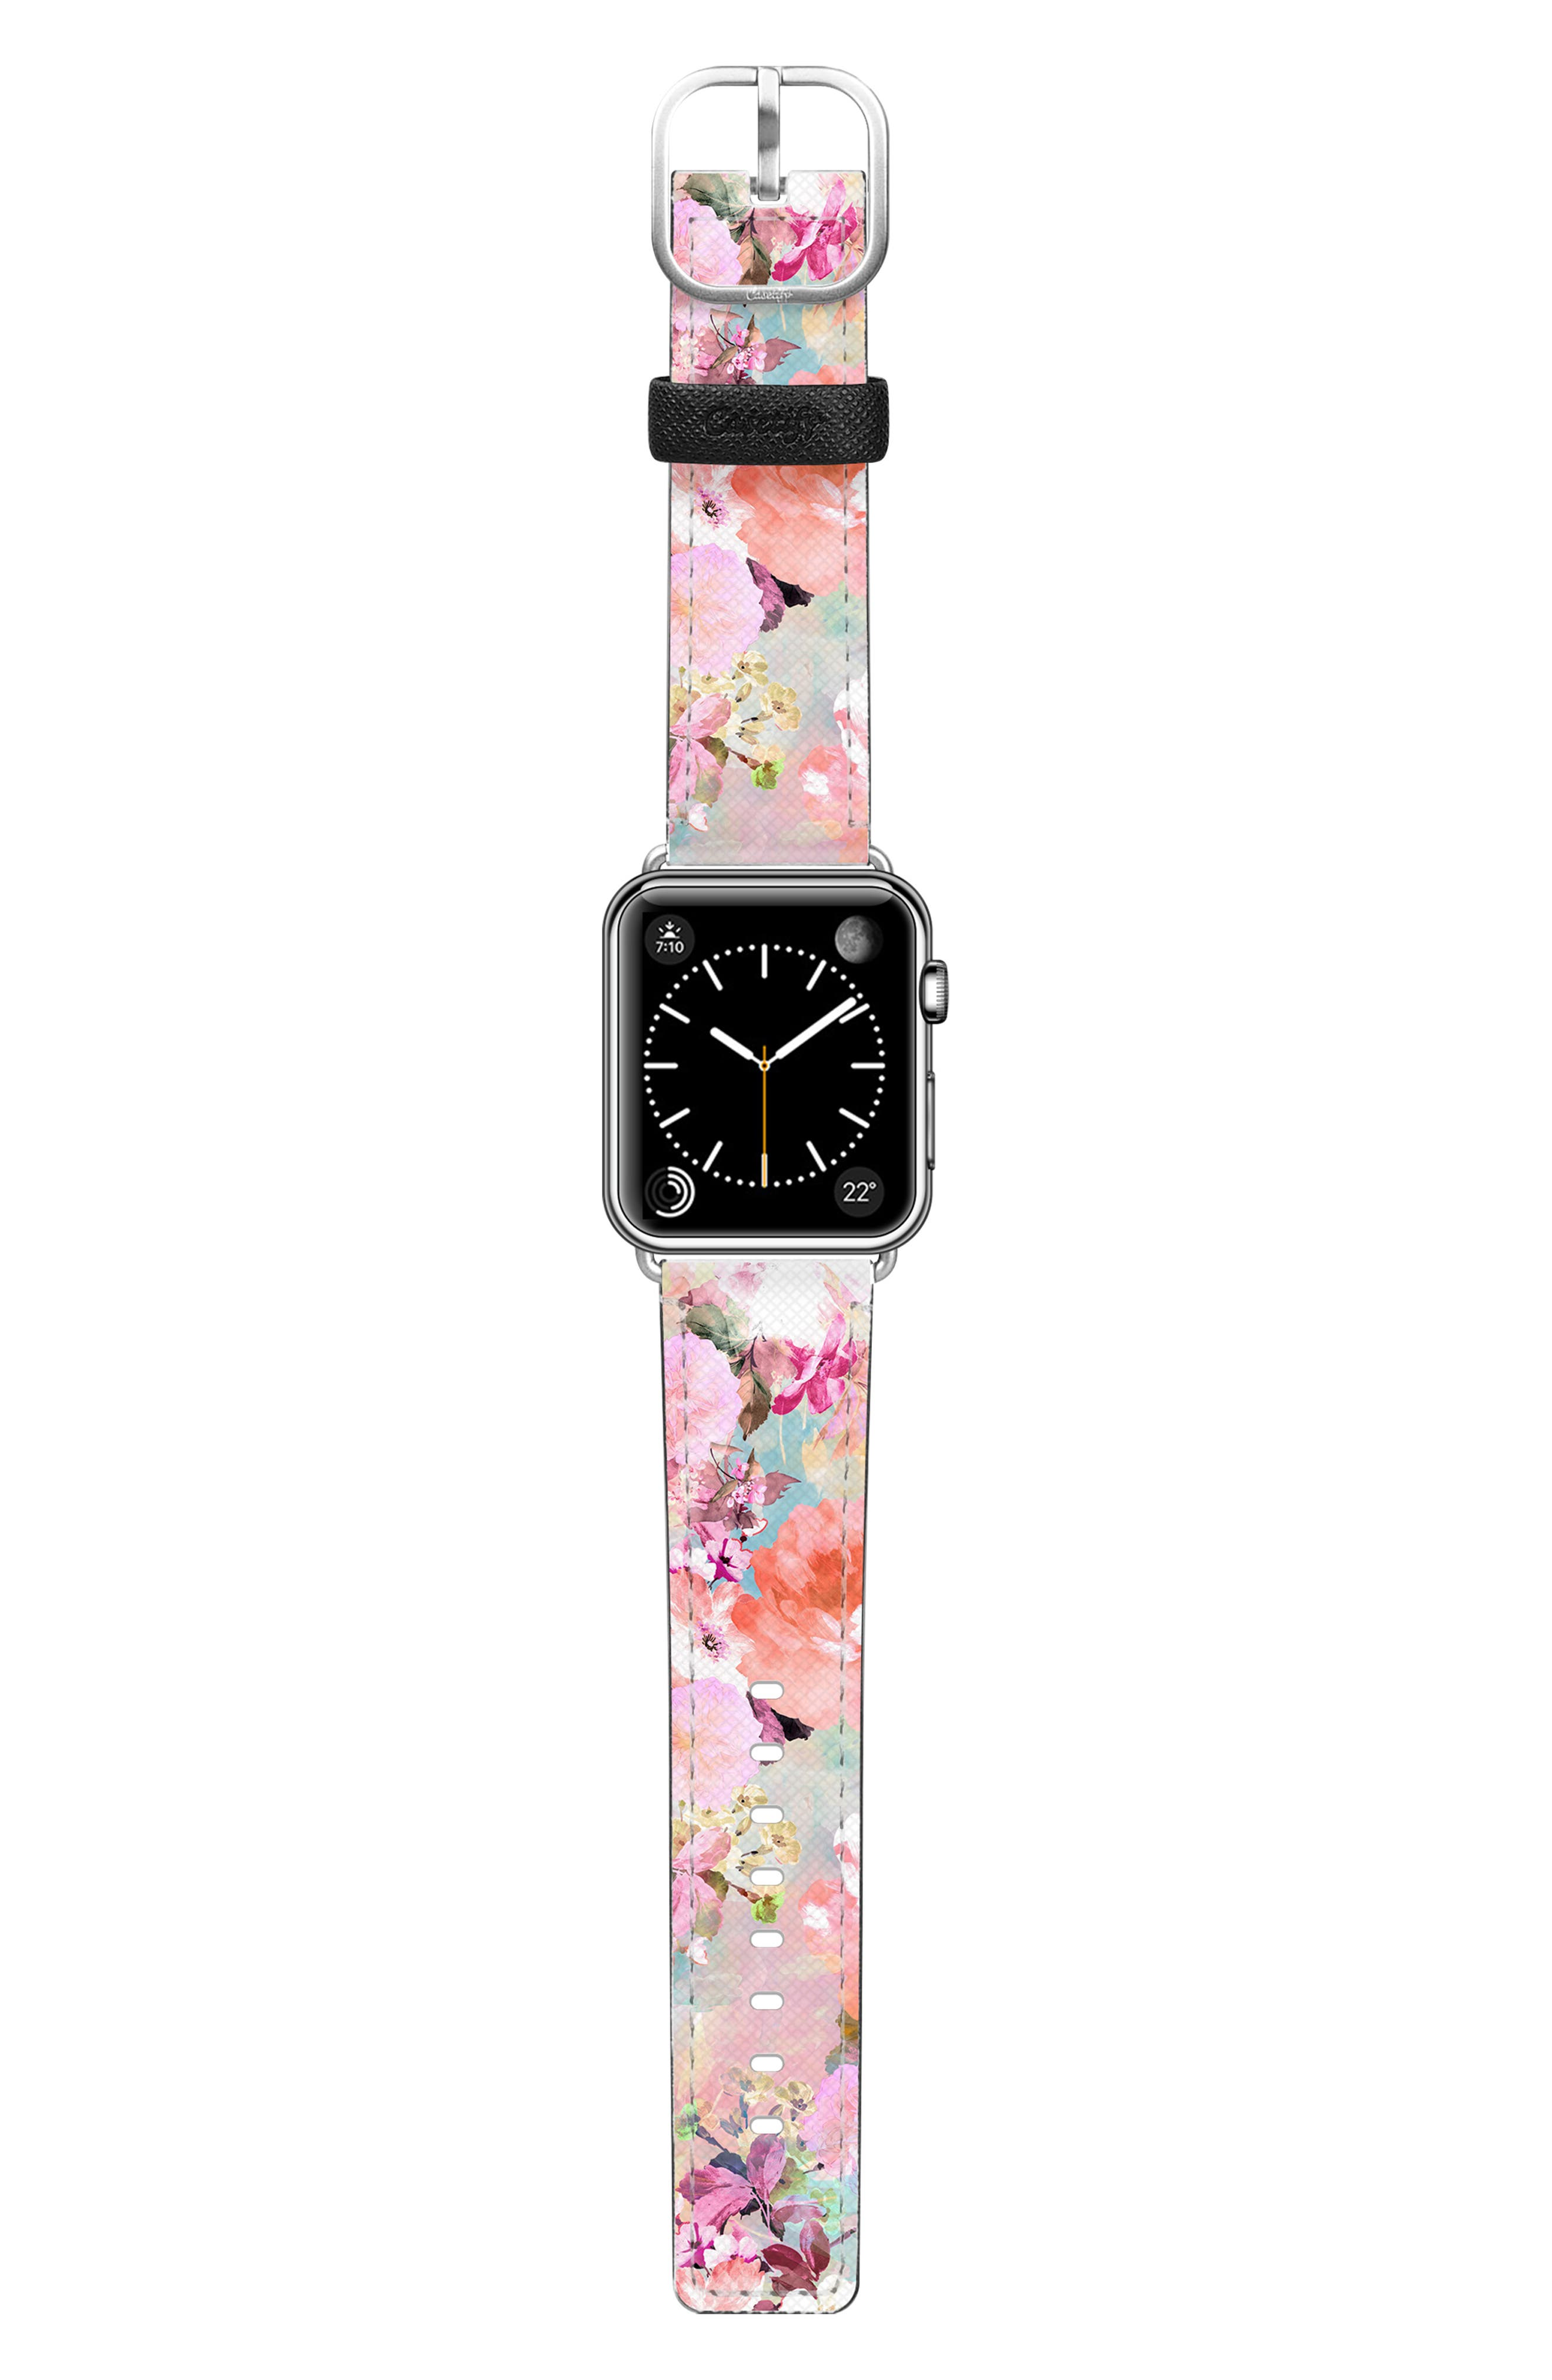 ROMANTIC WATERCOLOR FLOWERS SAFFIANO FAUX LEATHER APPLE WATCH STRAP